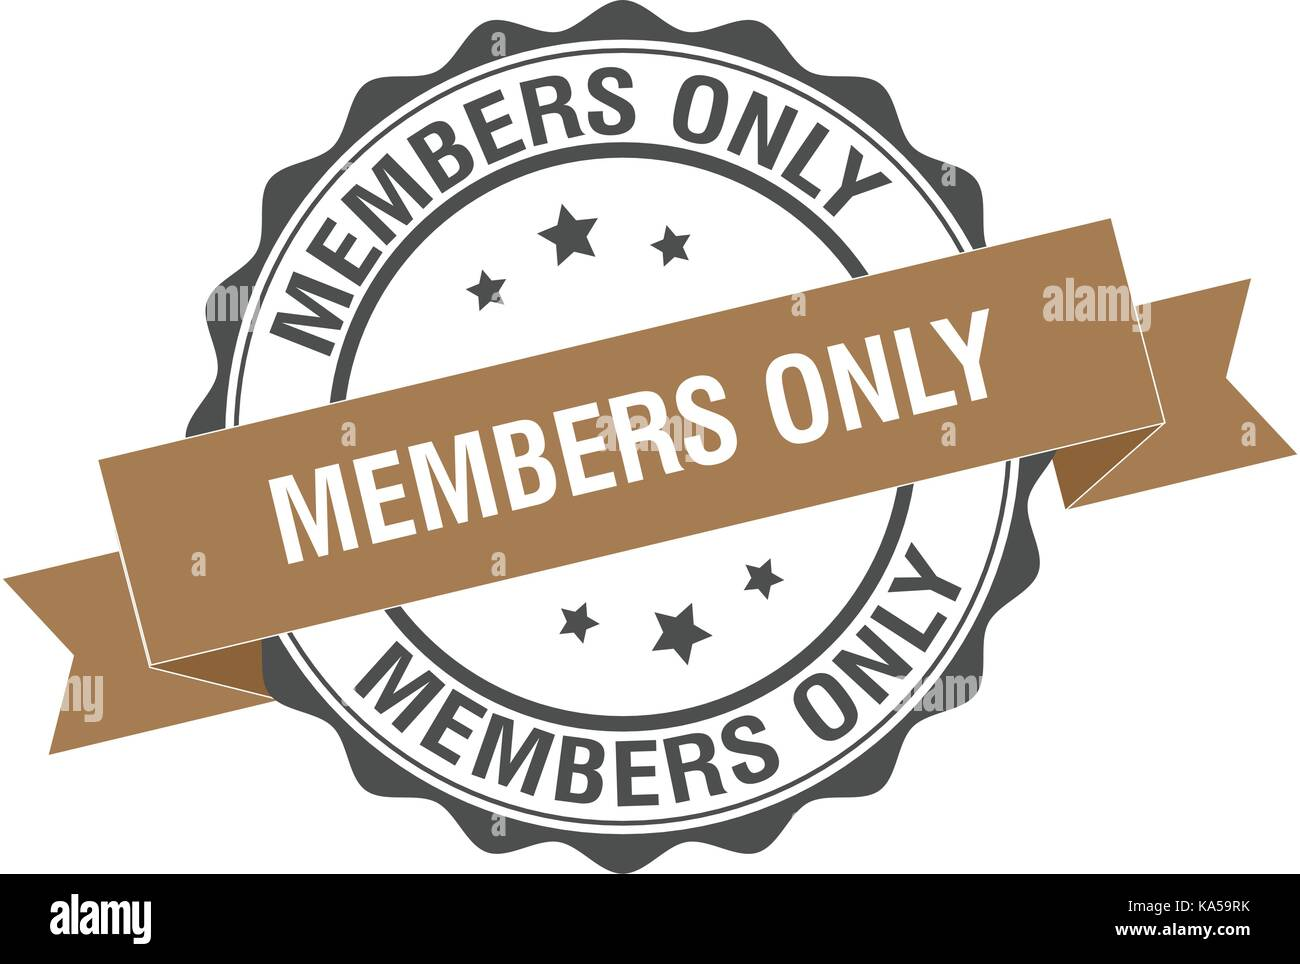 Members only stamp illustration - Stock Vector